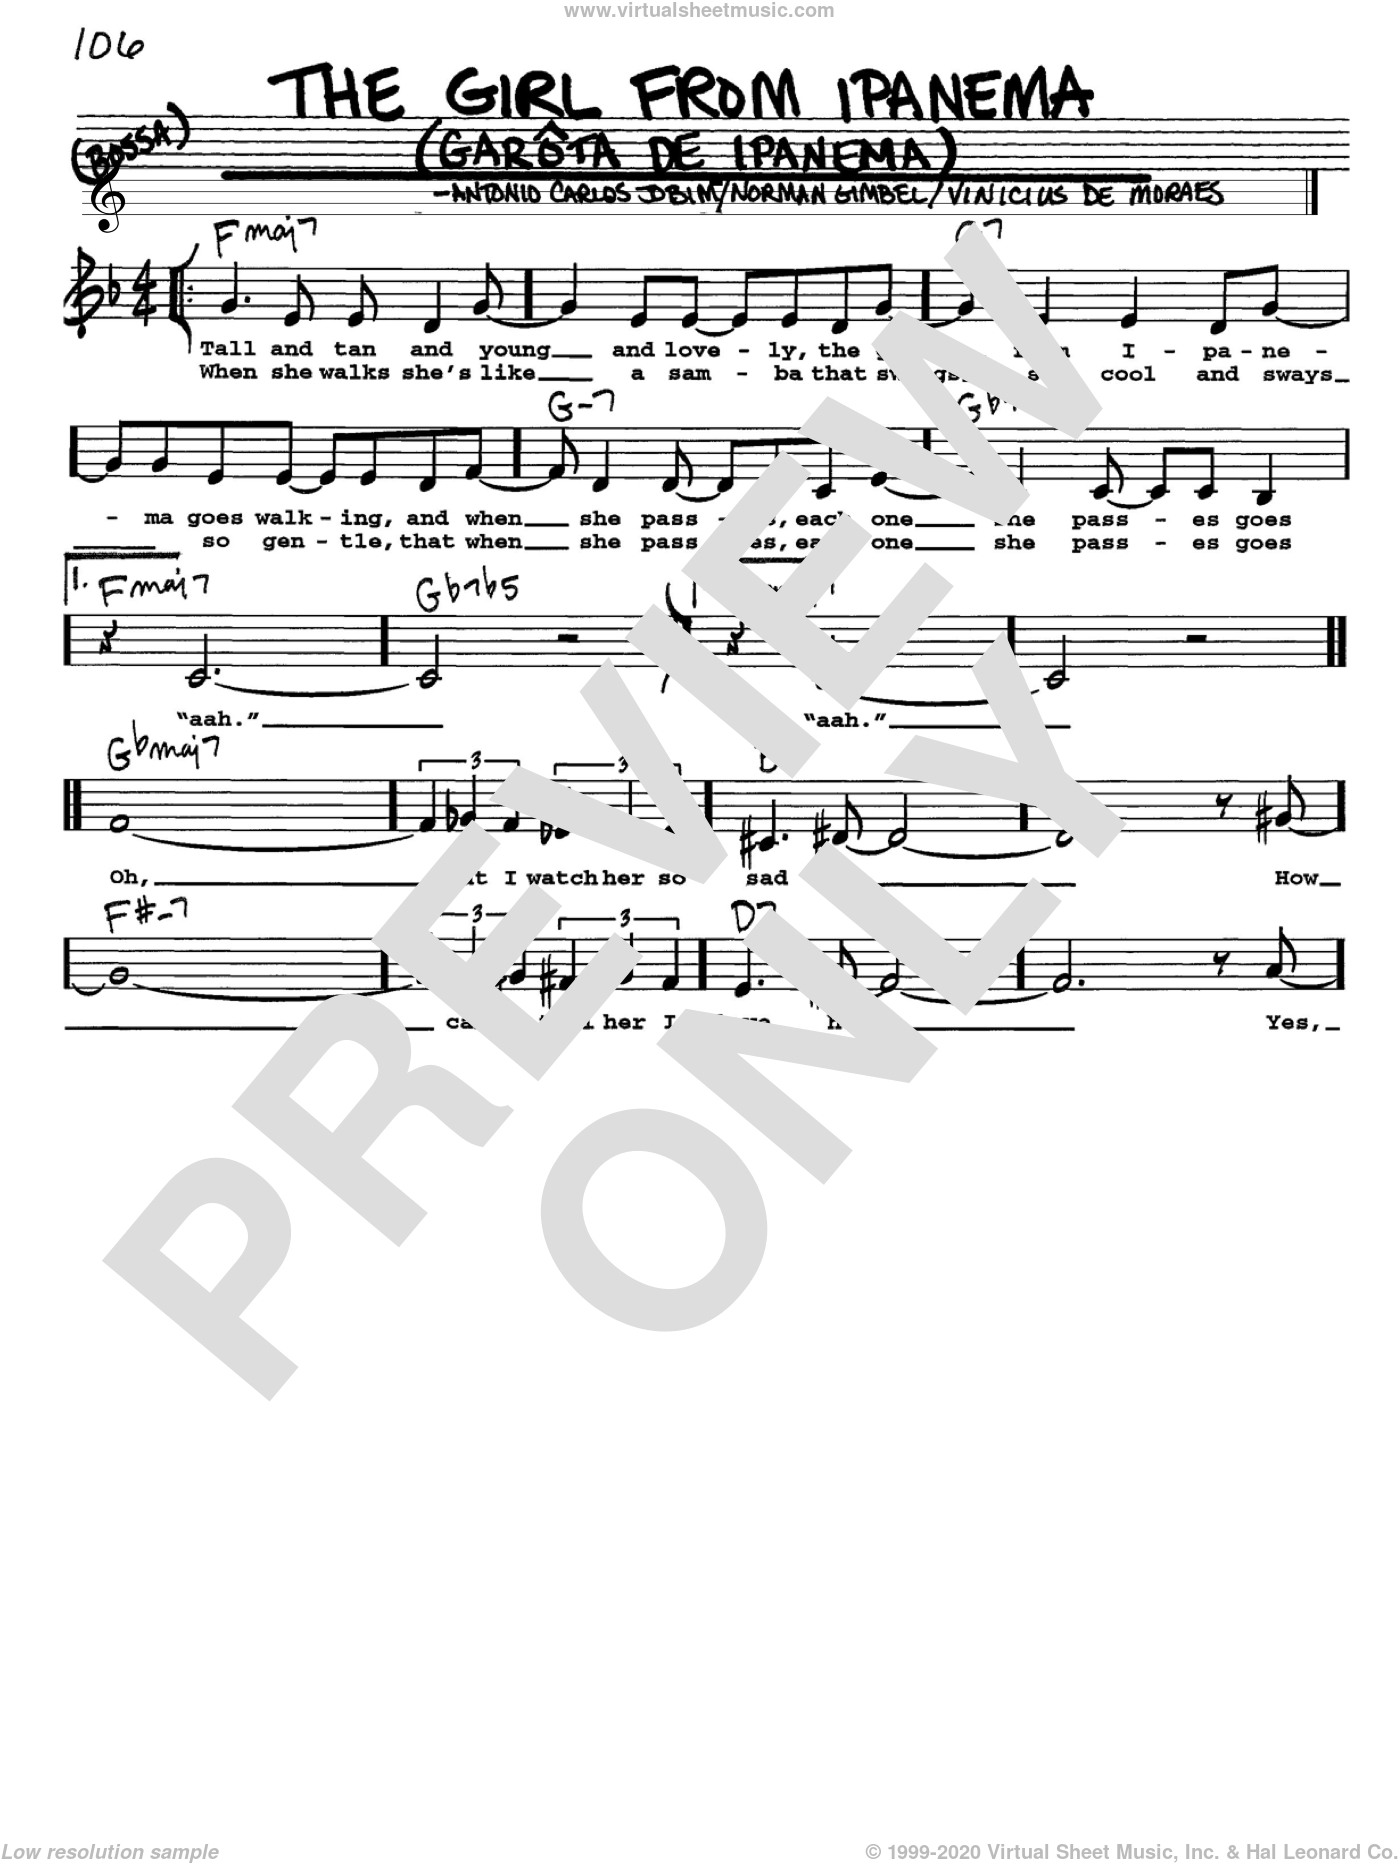 The Girl From Ipanema (Garota De Ipanema) sheet music for voice and other instruments (Vocal Volume 1) by Vinicius de Moraes, Antonio Carlos Jobim and Norman Gimbel. Score Image Preview.